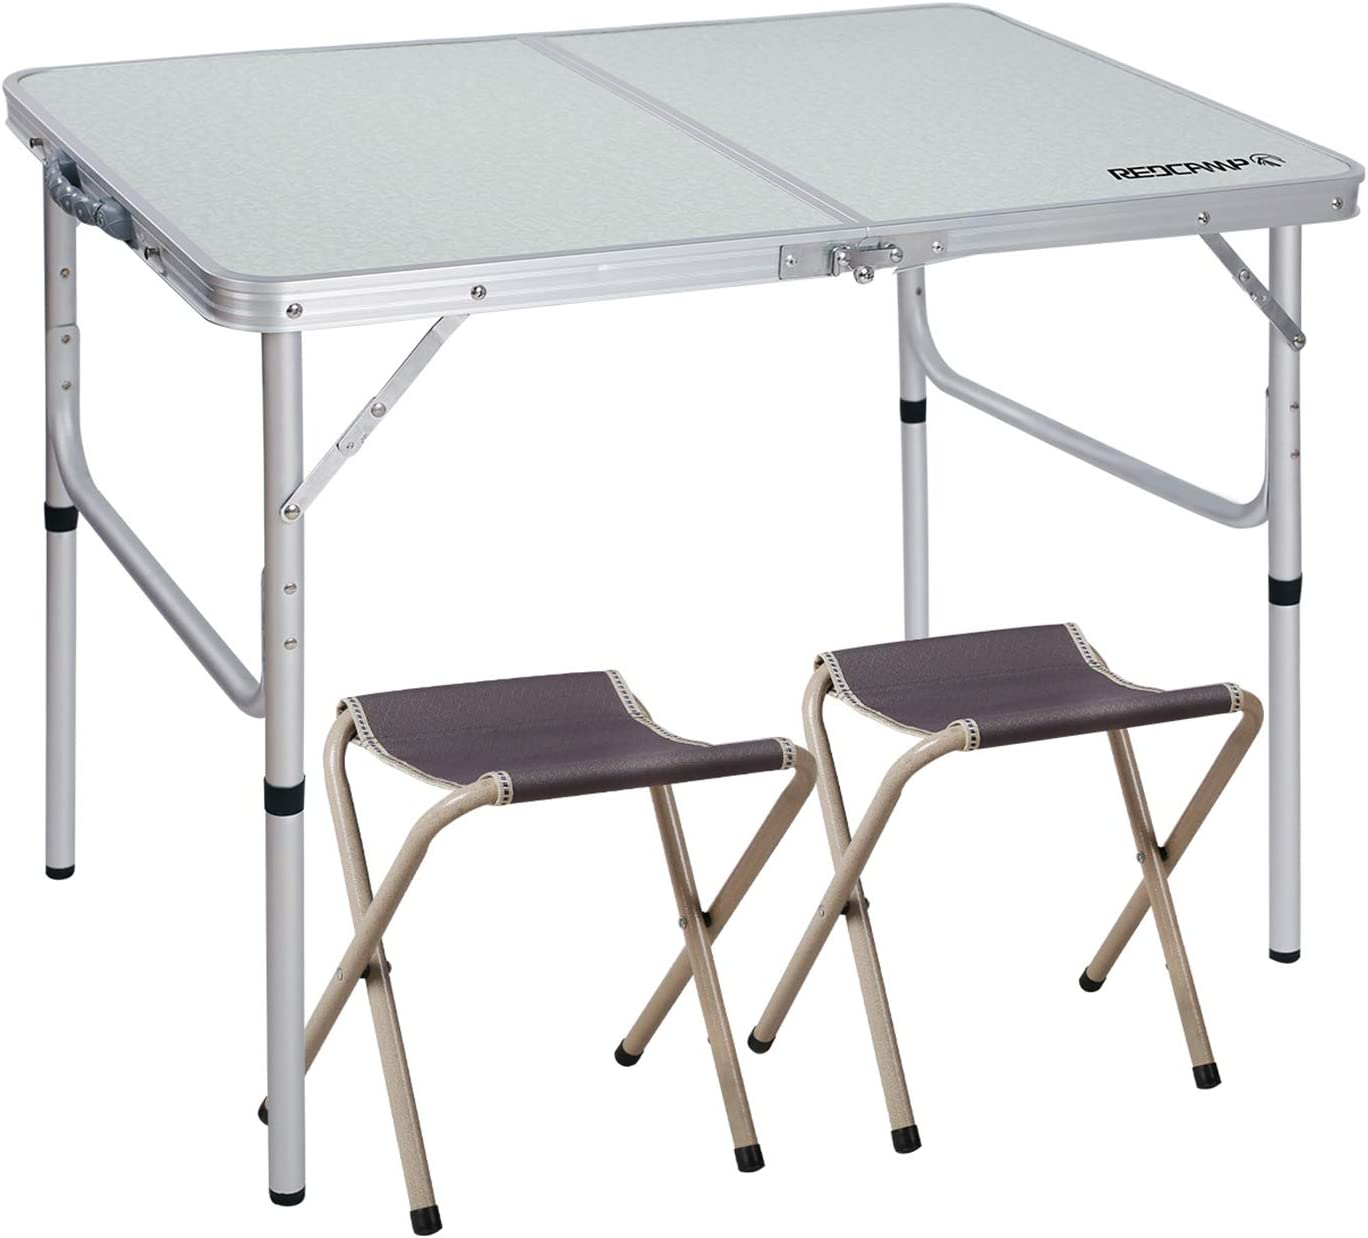 Redcamp 3 Foot Aluminum Folding Table And Chairs Set Adjustable Height Lightweight Portable Camping Table For Picnic Outdoor Indoor 3ft With 2 High Stools Furniture Decor